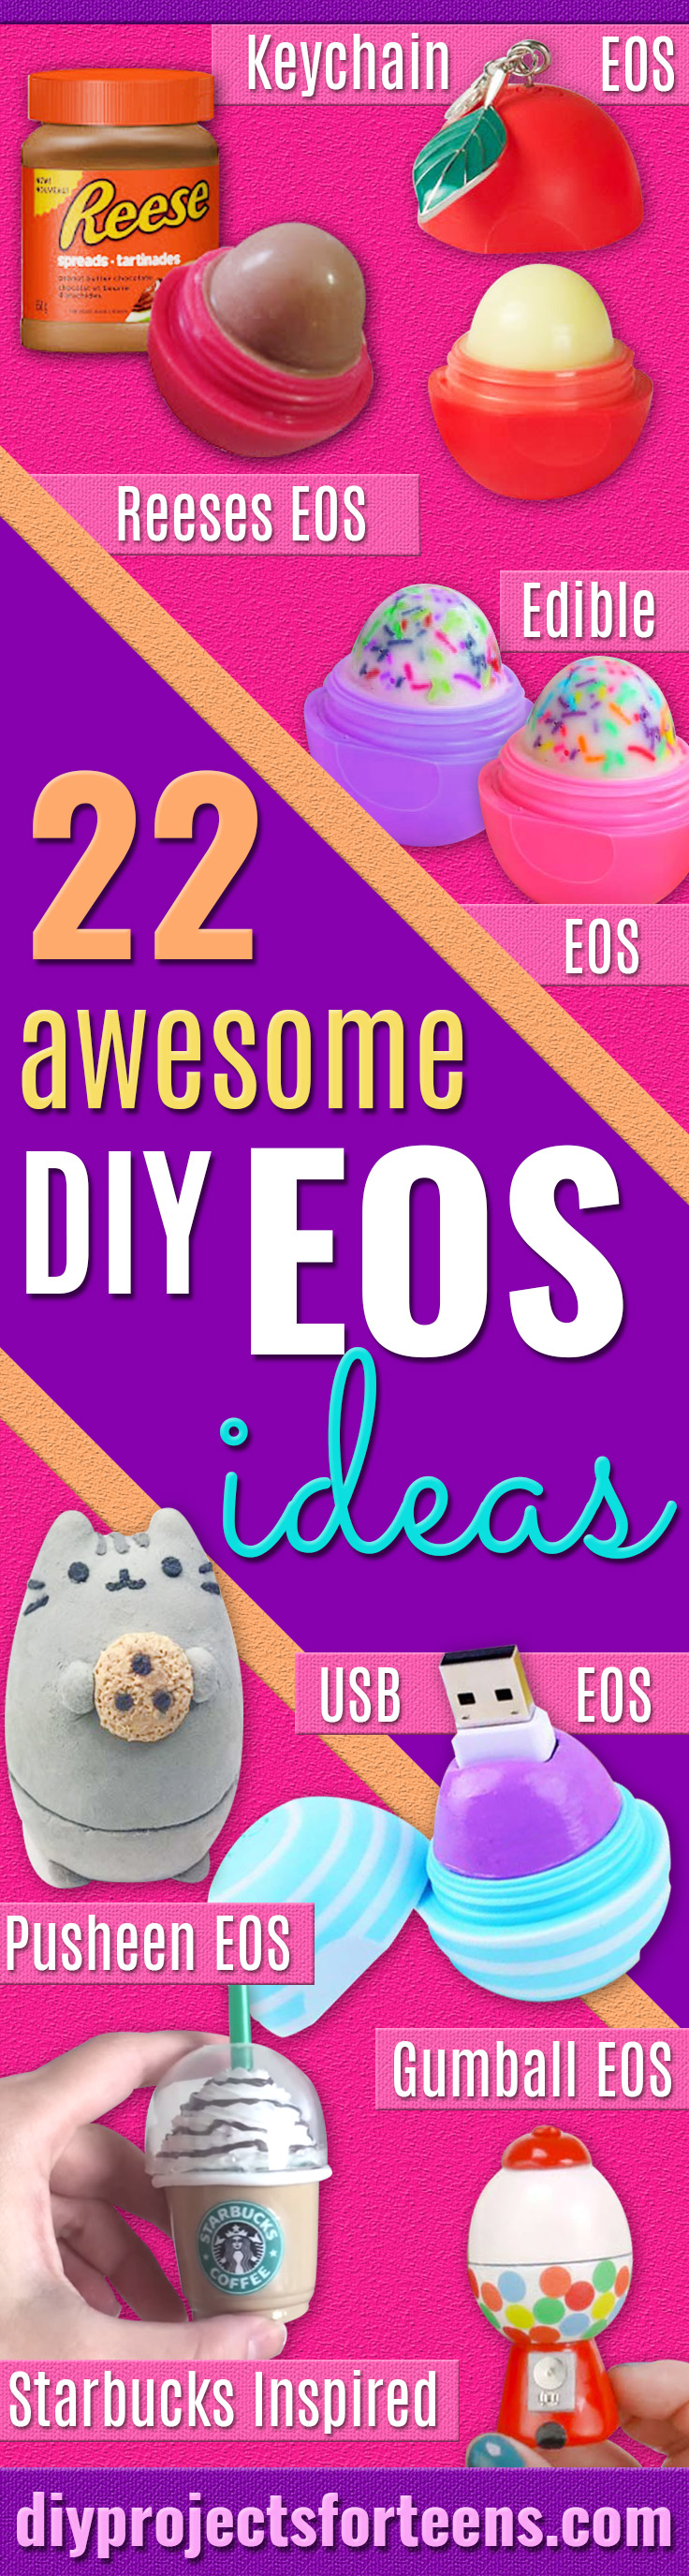 Balm christmas gift turn old eos containers into cool crafts ideas -  Turn Old Eos Containers Into Cool 22 Most Awesome Diy Eos Ideas Best Diy Eos Projects Diy Secret Eos Lip